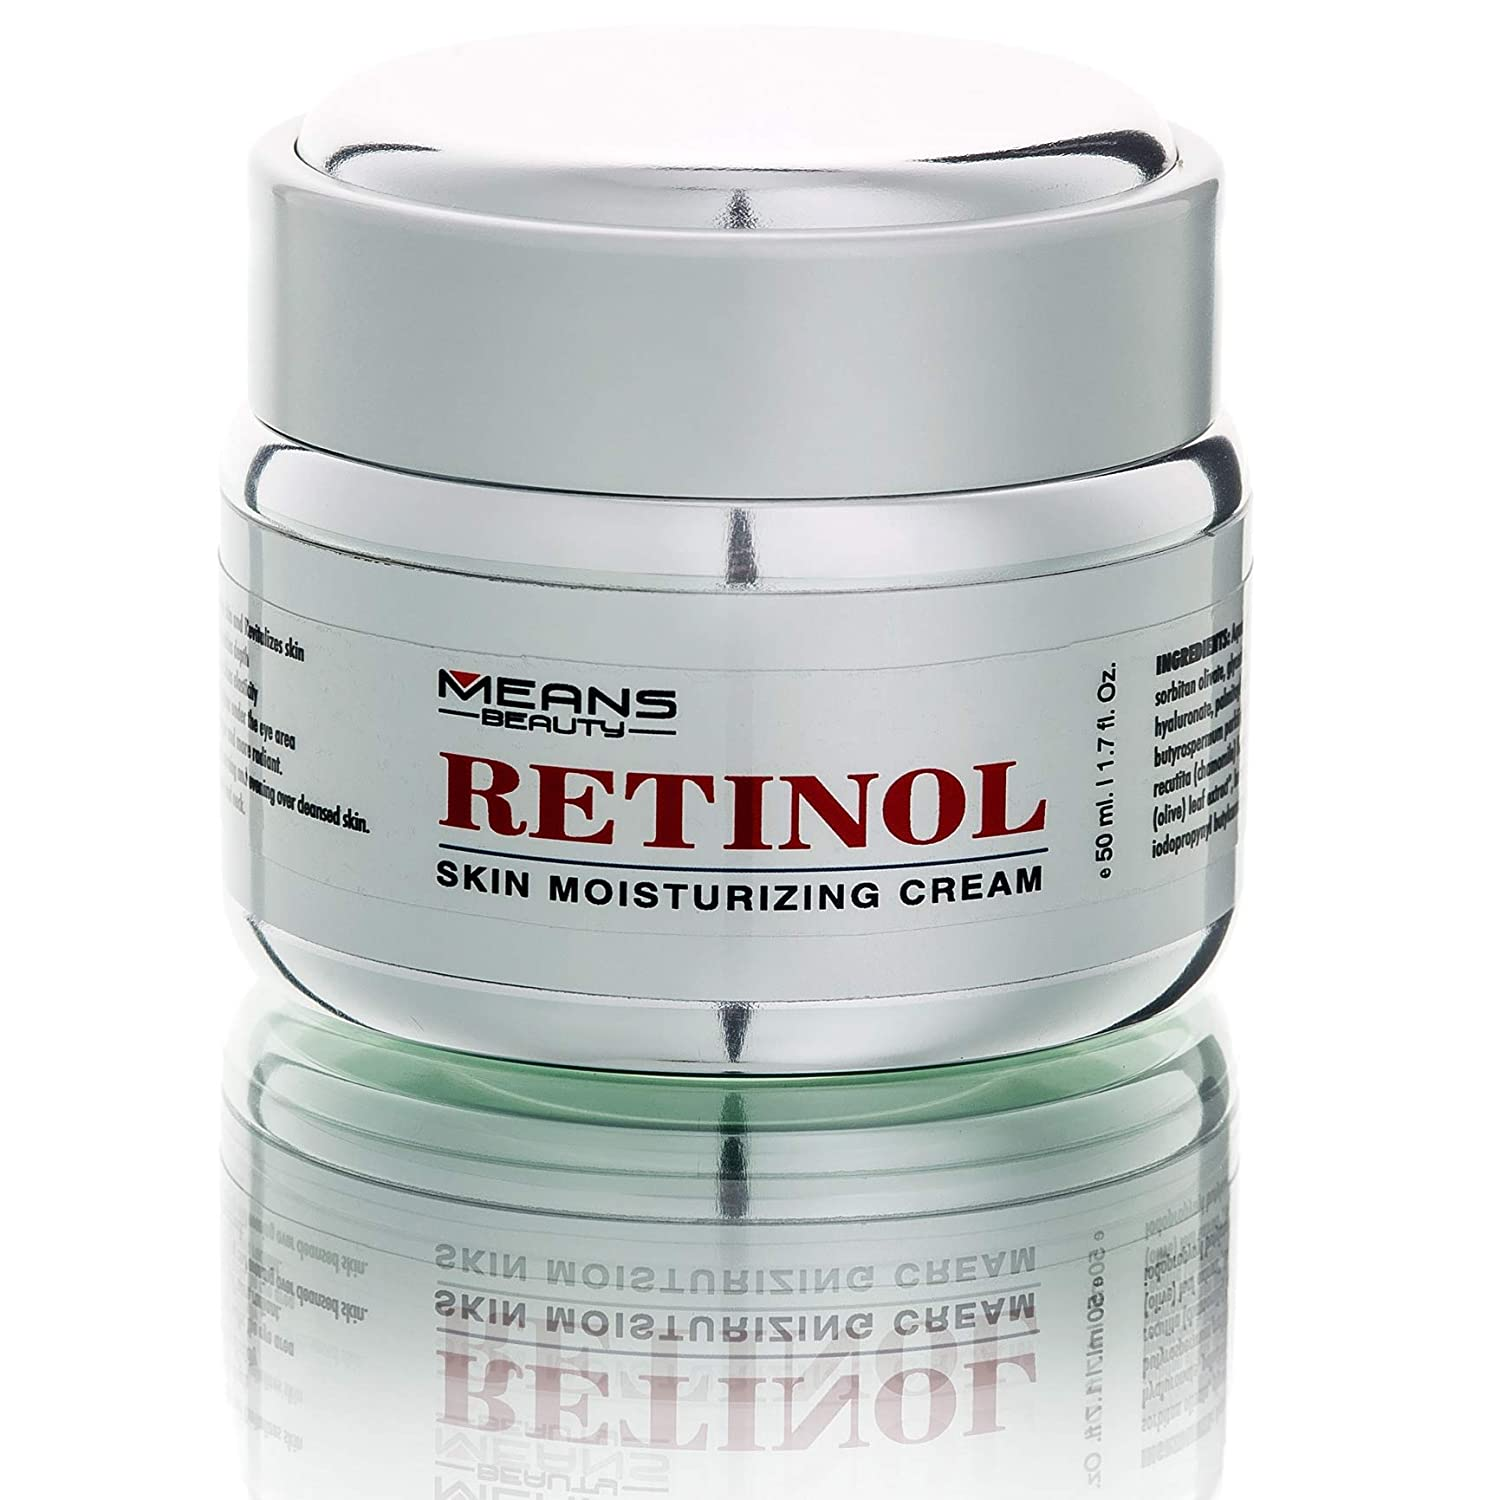 Retinol Cream For Face, Neck, Décolleté And Eye Area For Men And Woman W/Hyaluronic Acid, Vitamin E, Green Tea, Fights The Appearance Of Wrinkles, First Results in 5 Weeks,Made in Canada, Best Formula to Reduce Wrinkles, Puffy Eyes And Dark Circle